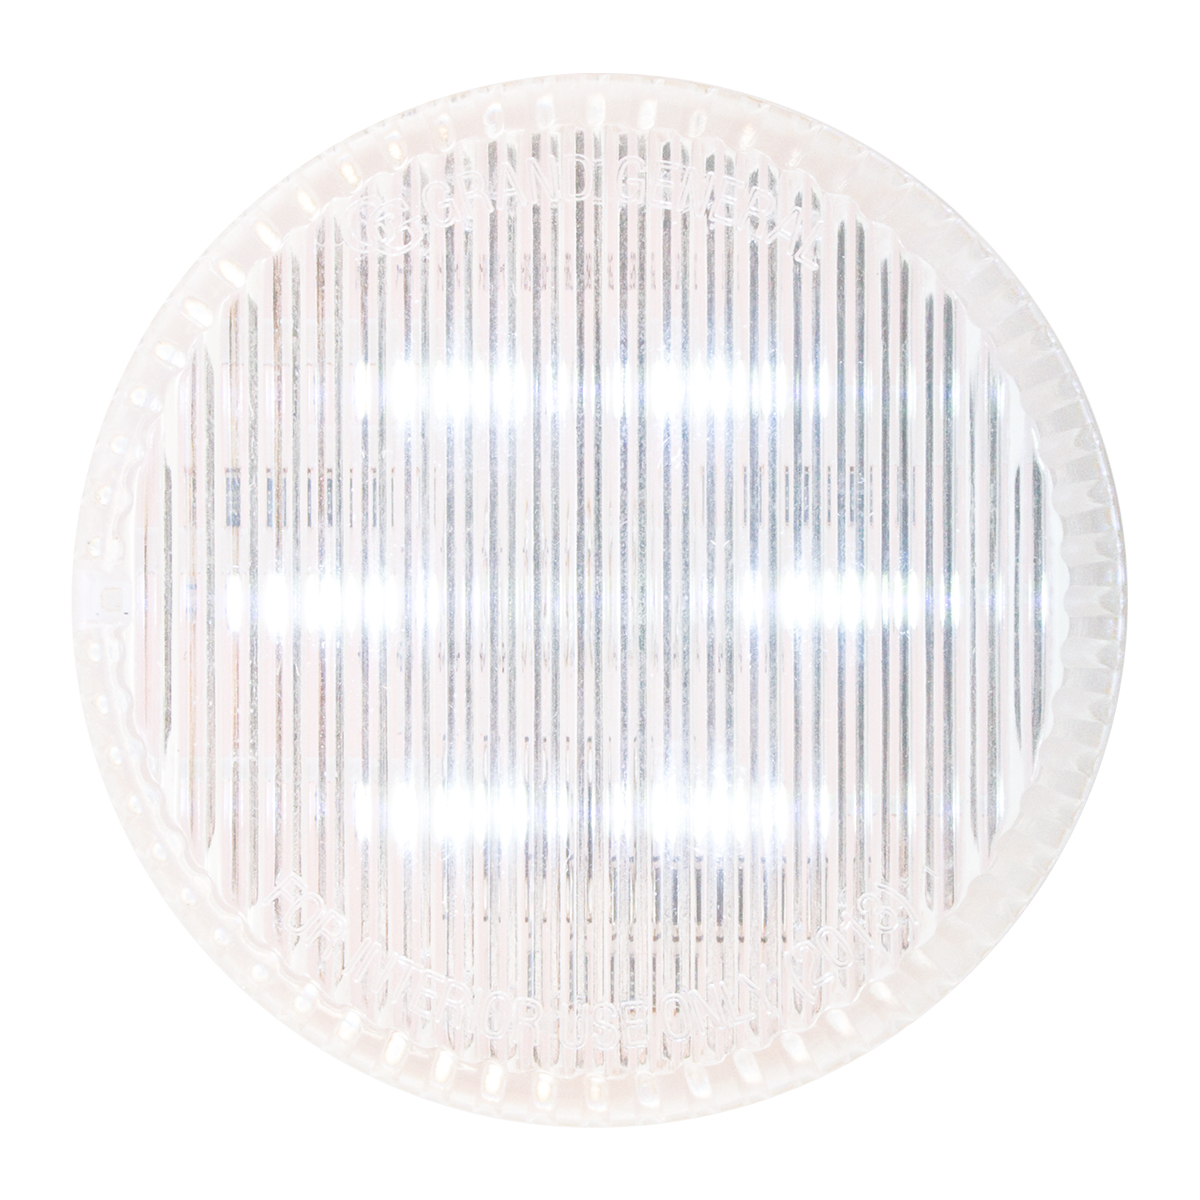 "75984 2"" Round Dual Function Light"